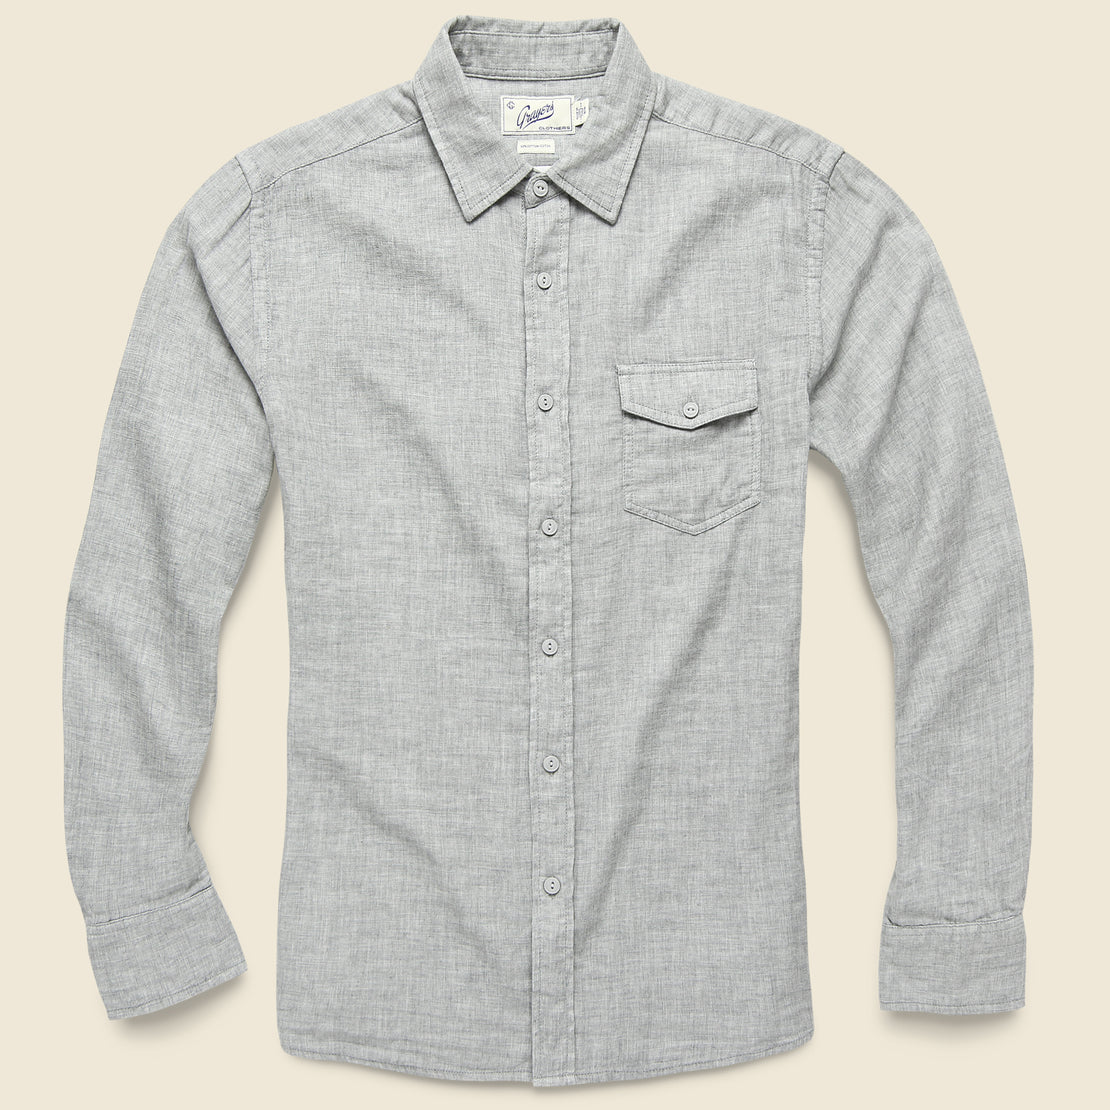 Grayers Hartford Double Cloth Shirt - Charcoal Heather